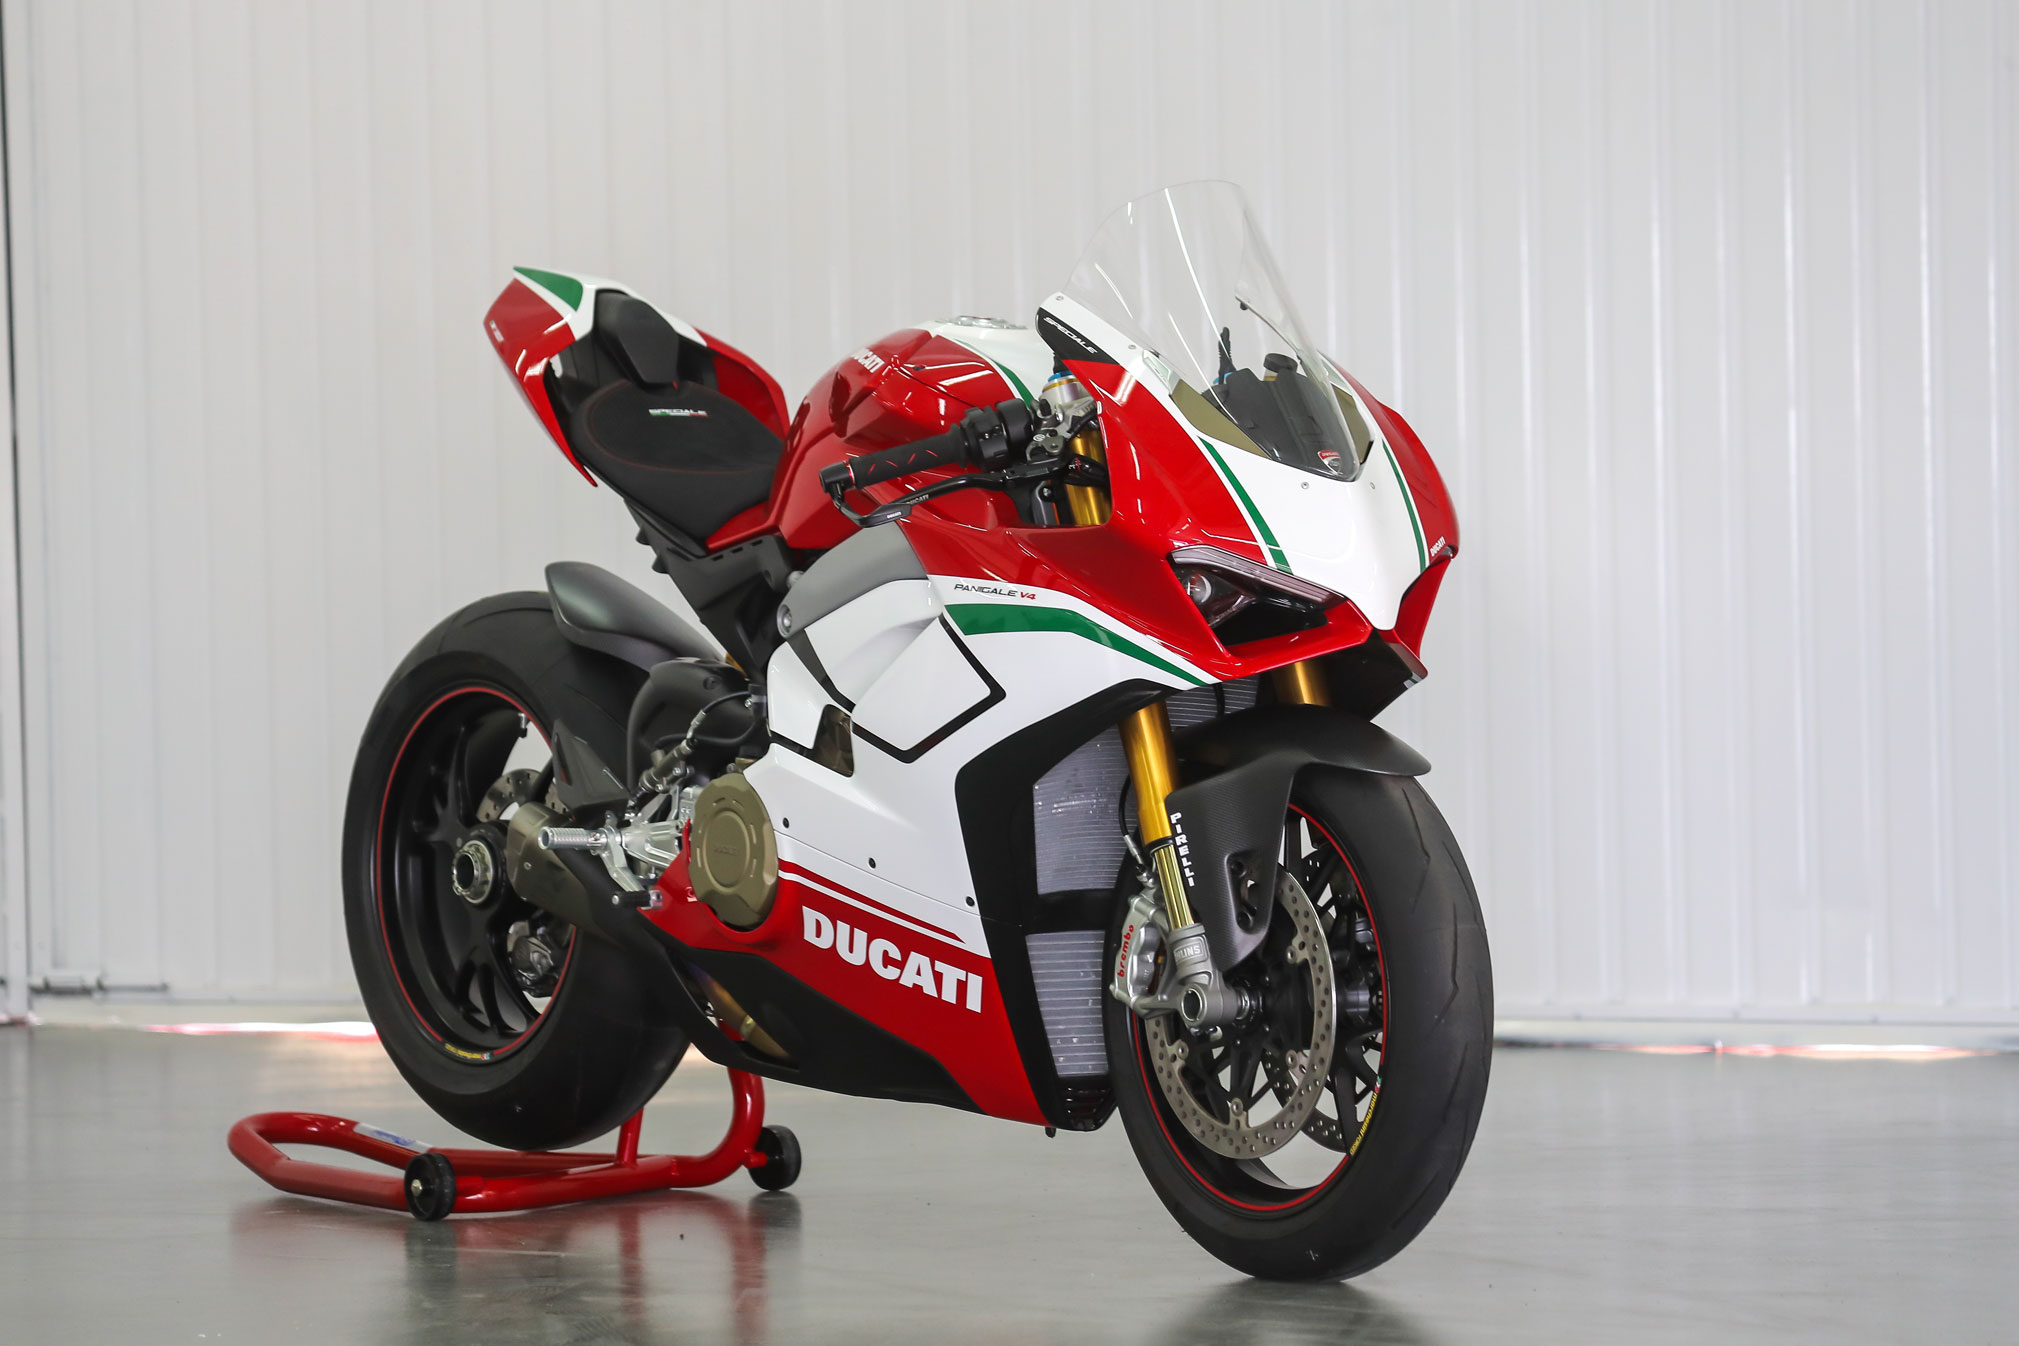 2019 Ducati Panigale V4 Speciale Guide • Total Motorcycle